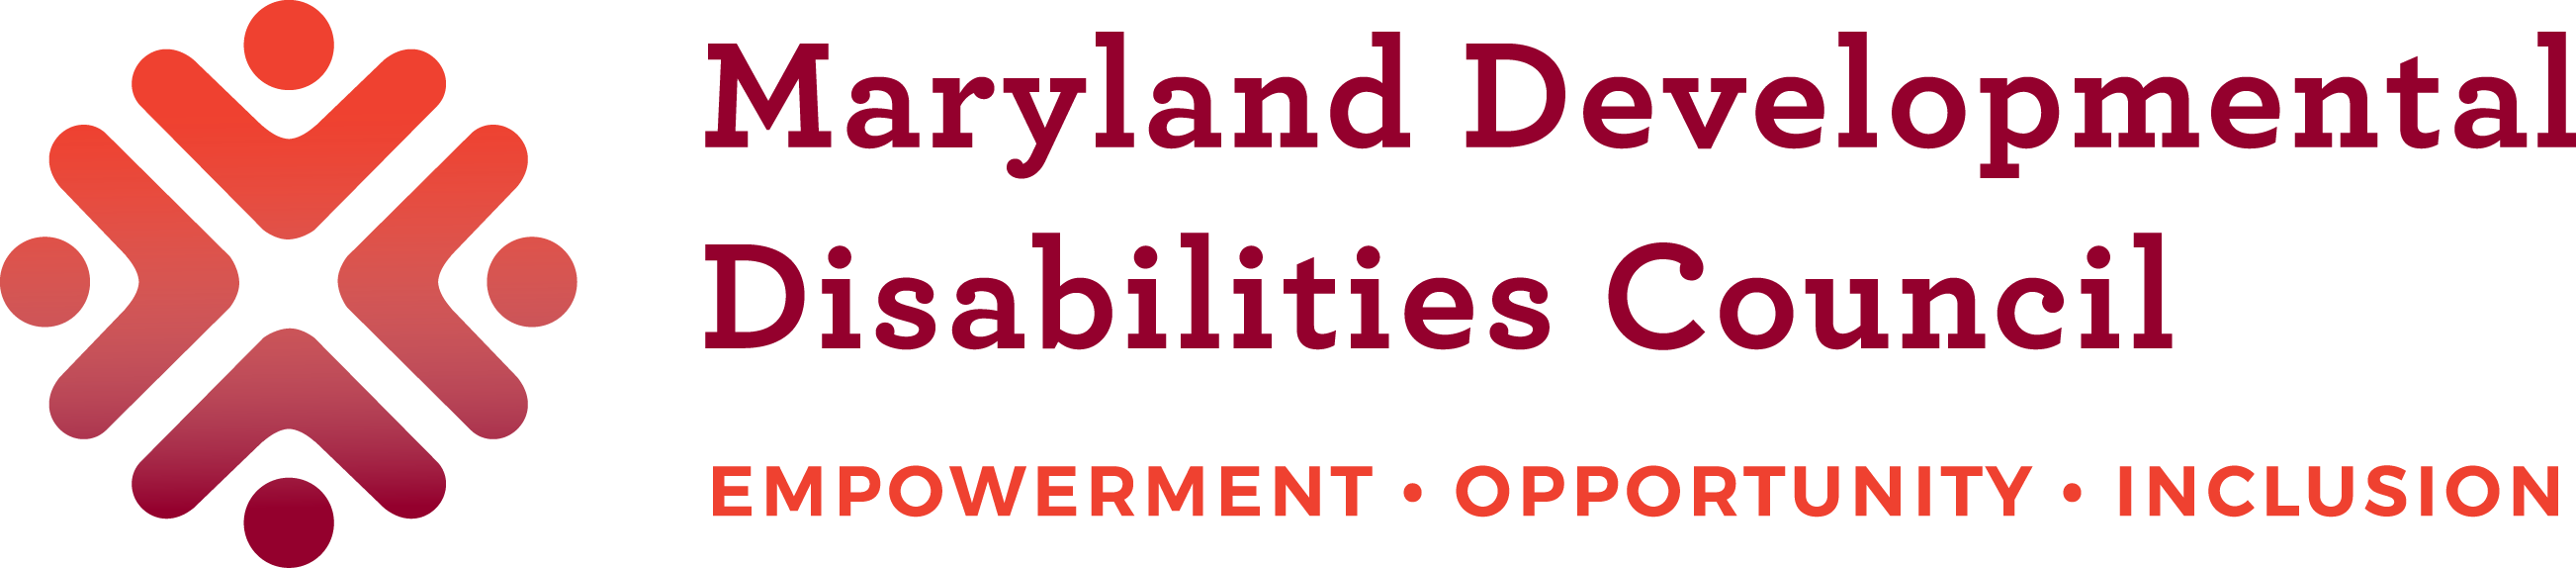 MDDC Logo Maryland Development Disabilities Council Empowerment Opportunity Inclusion